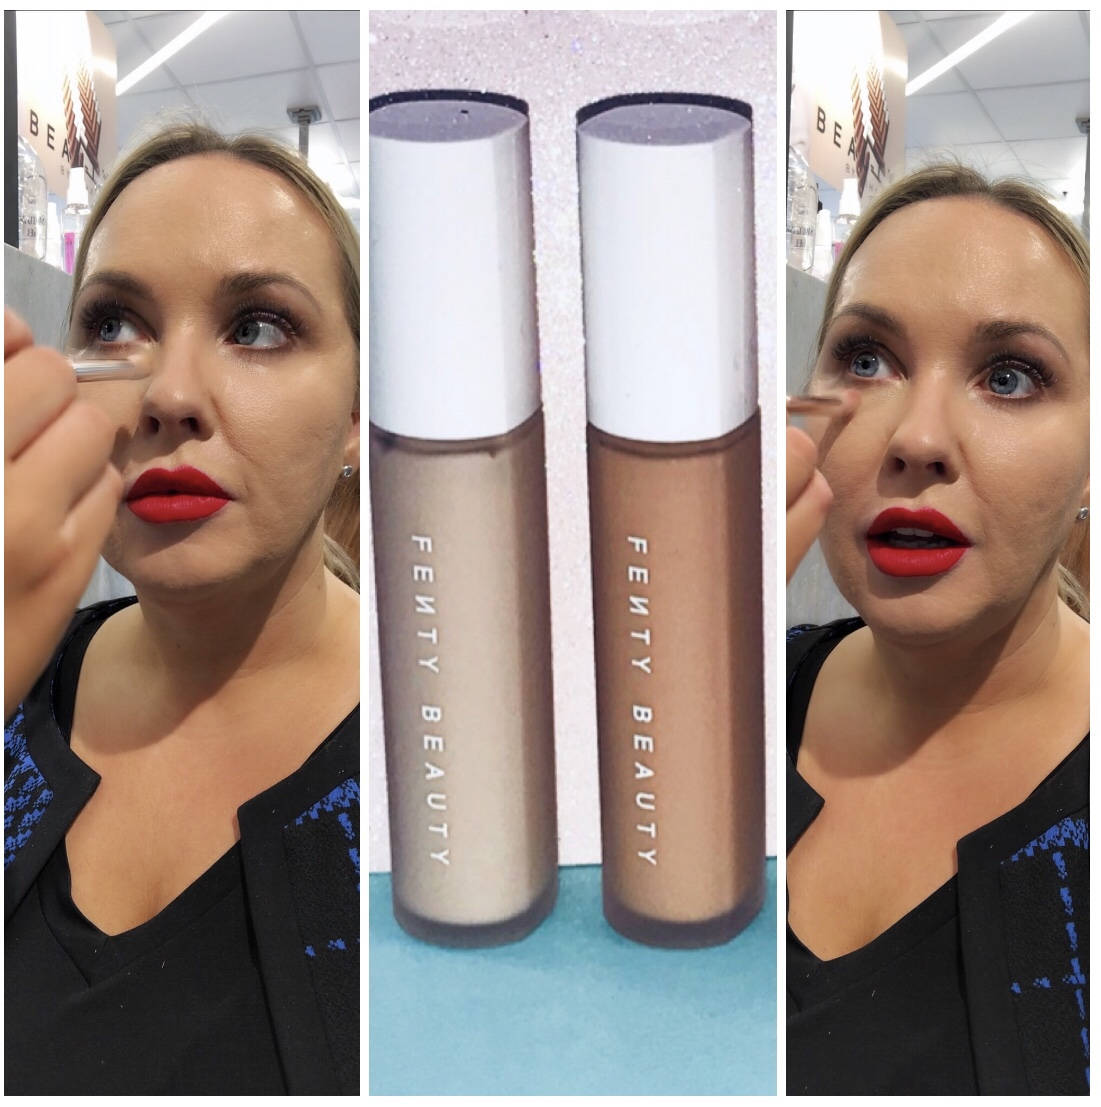 Buy Fenty Beauty at Boots Lakeside, Essex - concealer